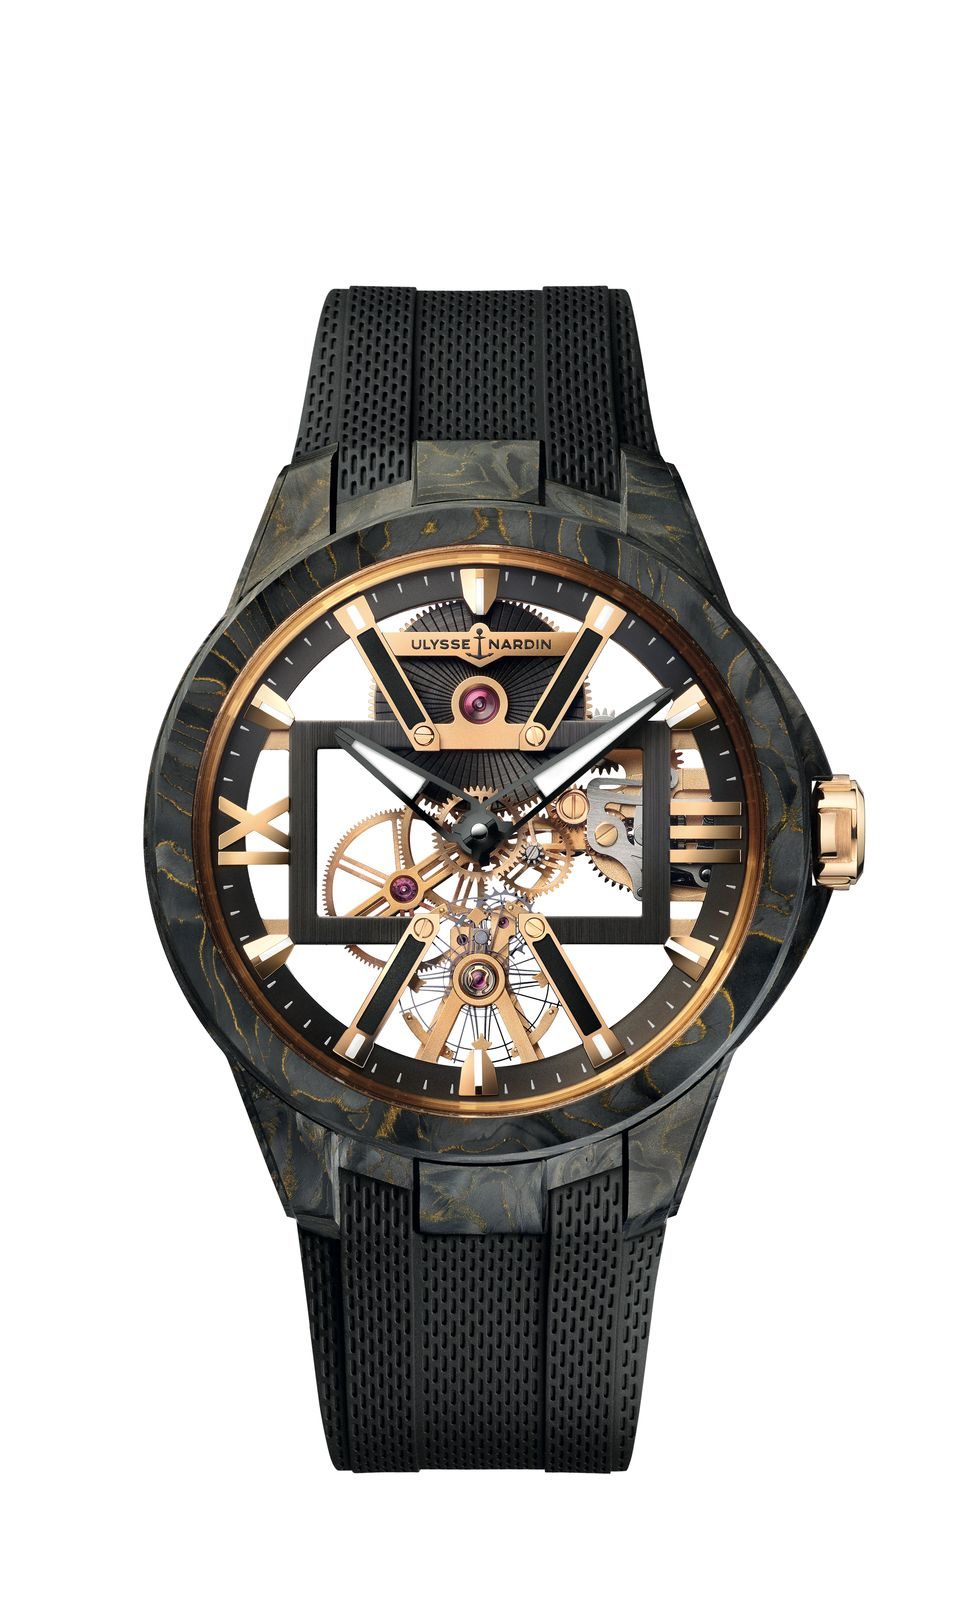 Interview with CEO of Ulysse Nardin and Girard-Perregaux, Patrick Pruniaux